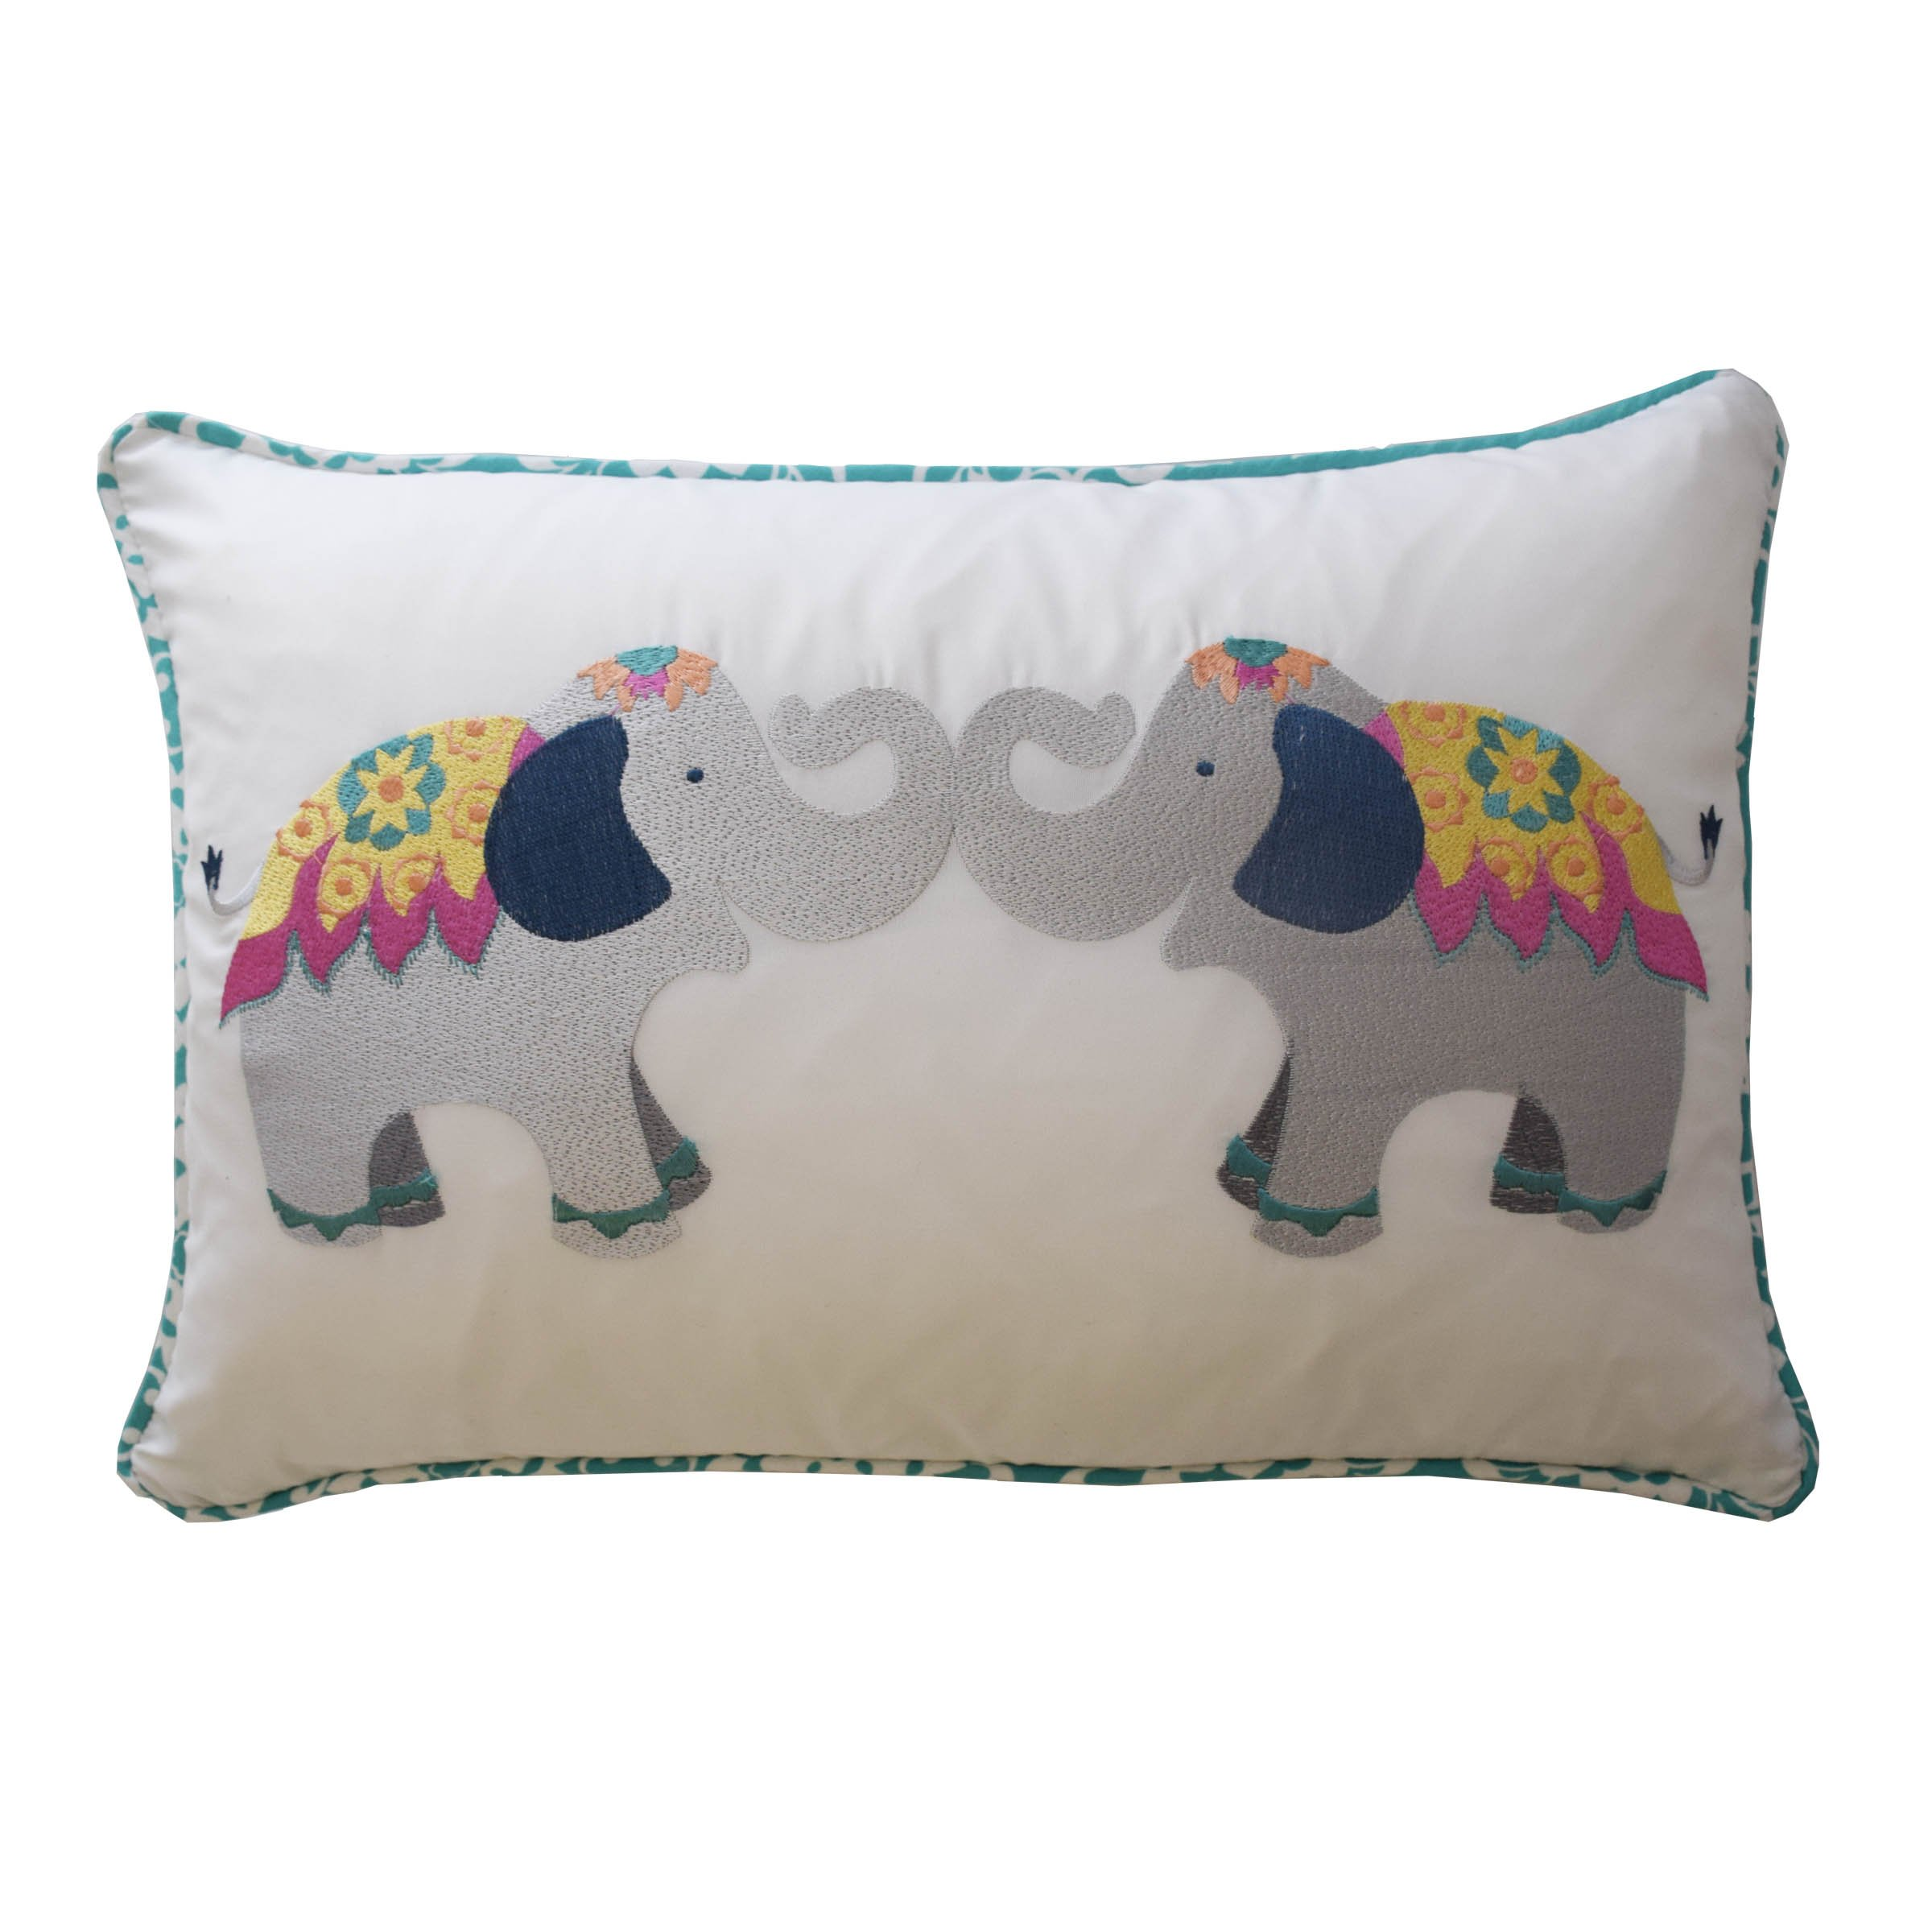 WAVERLY Kids Bollywood Decorative Pillow, 12 x 18, Multicolor by WAVERLY